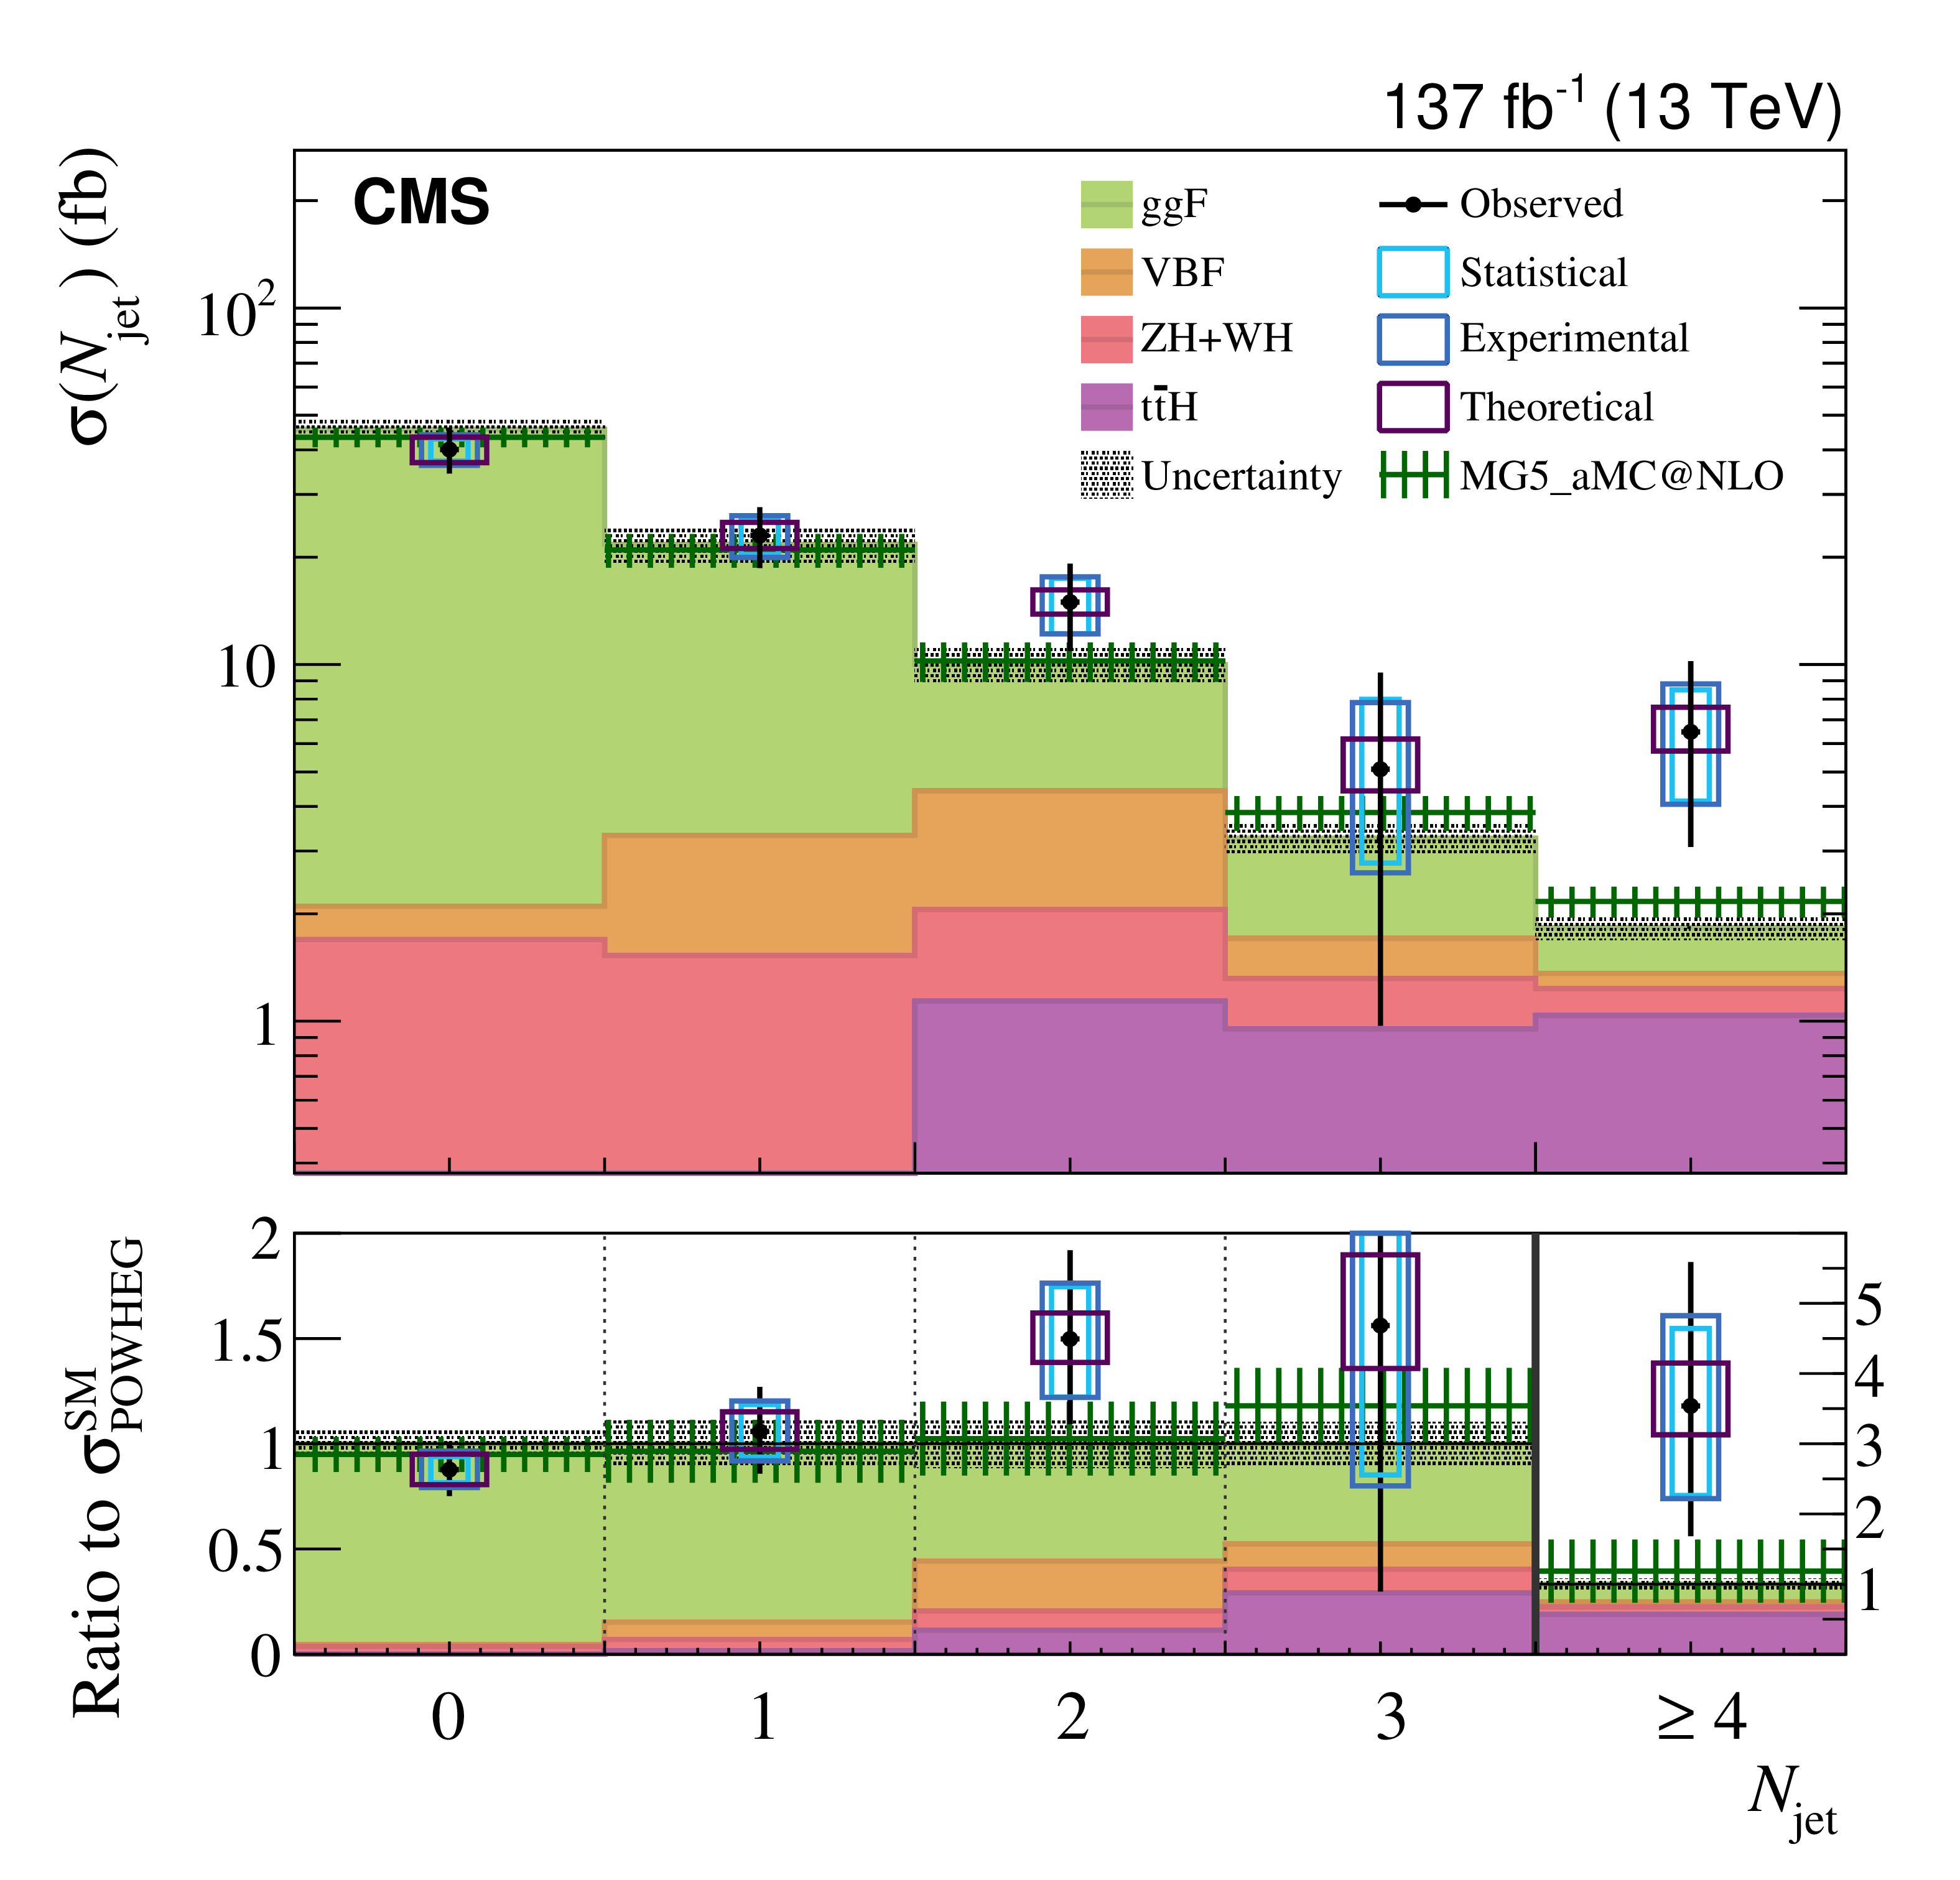 Higgs boson measured differential cross-section as a function of the number of associated jets.